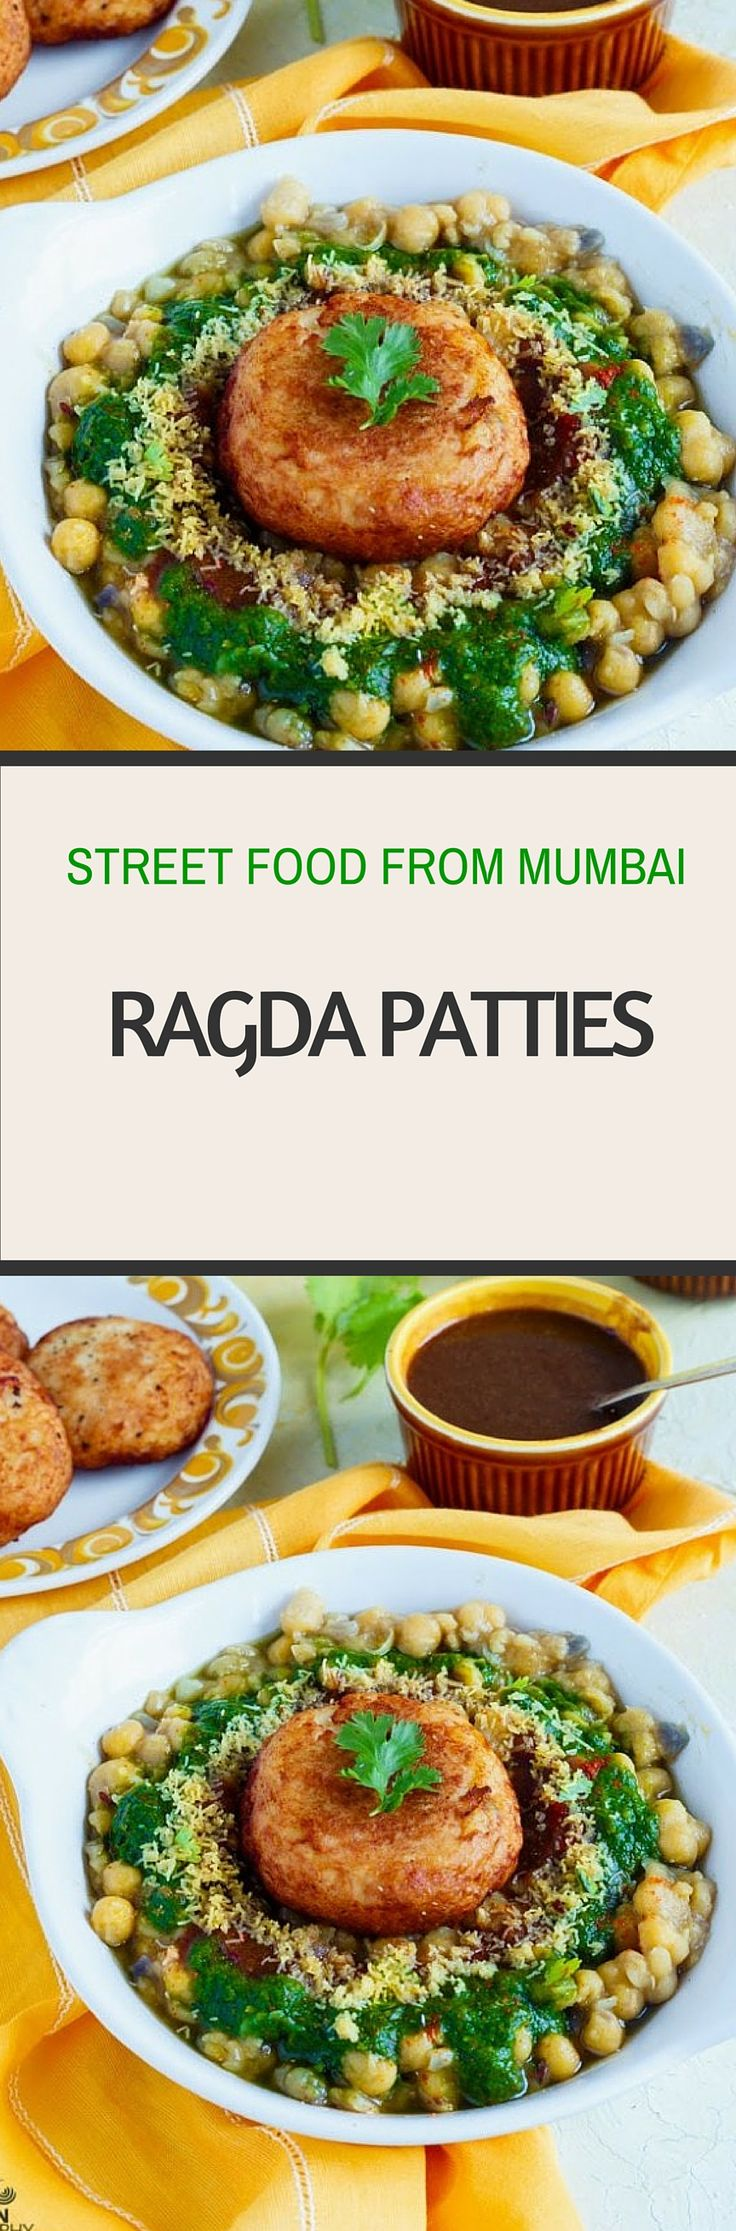 Ragda Patties, Street Food from Mumbai Recipe, YUM Veggie Snack,  @sandhyaskitchen, via @sunjayjk